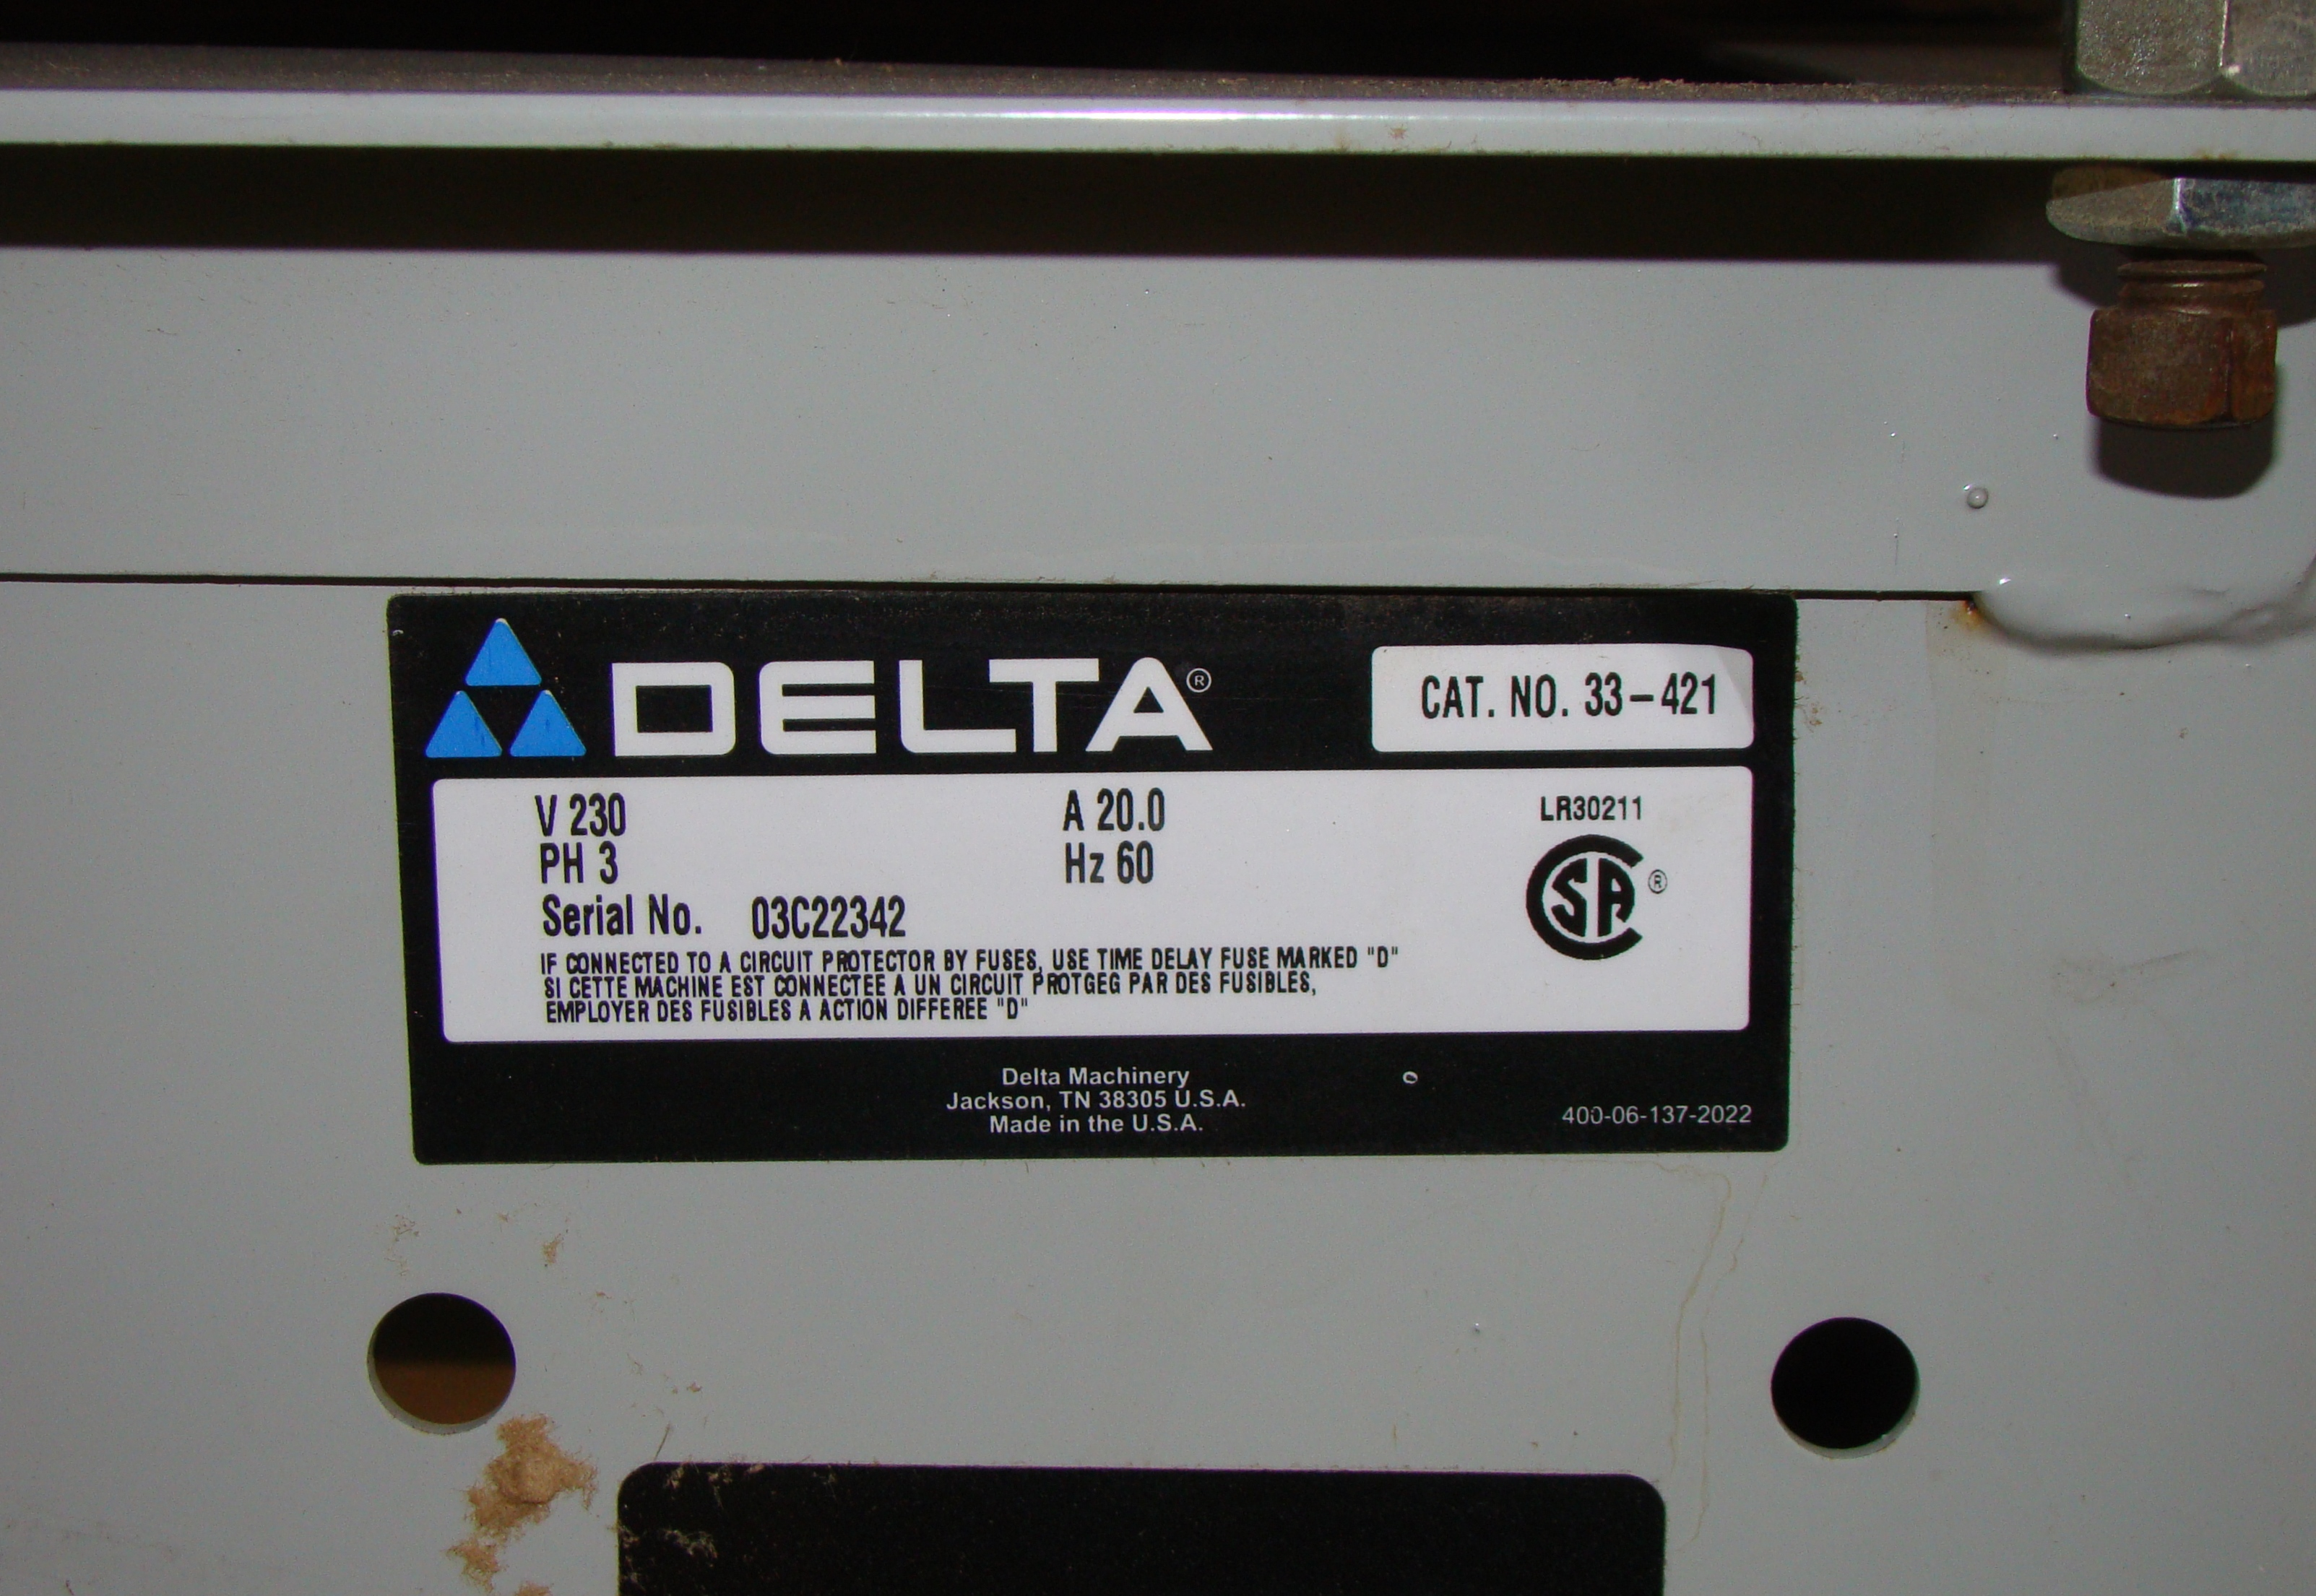 "Delta 33-421 18"" Radial Arm Saw 7.5 HP 230/460 Volt 3PH - Image 5 of 7"